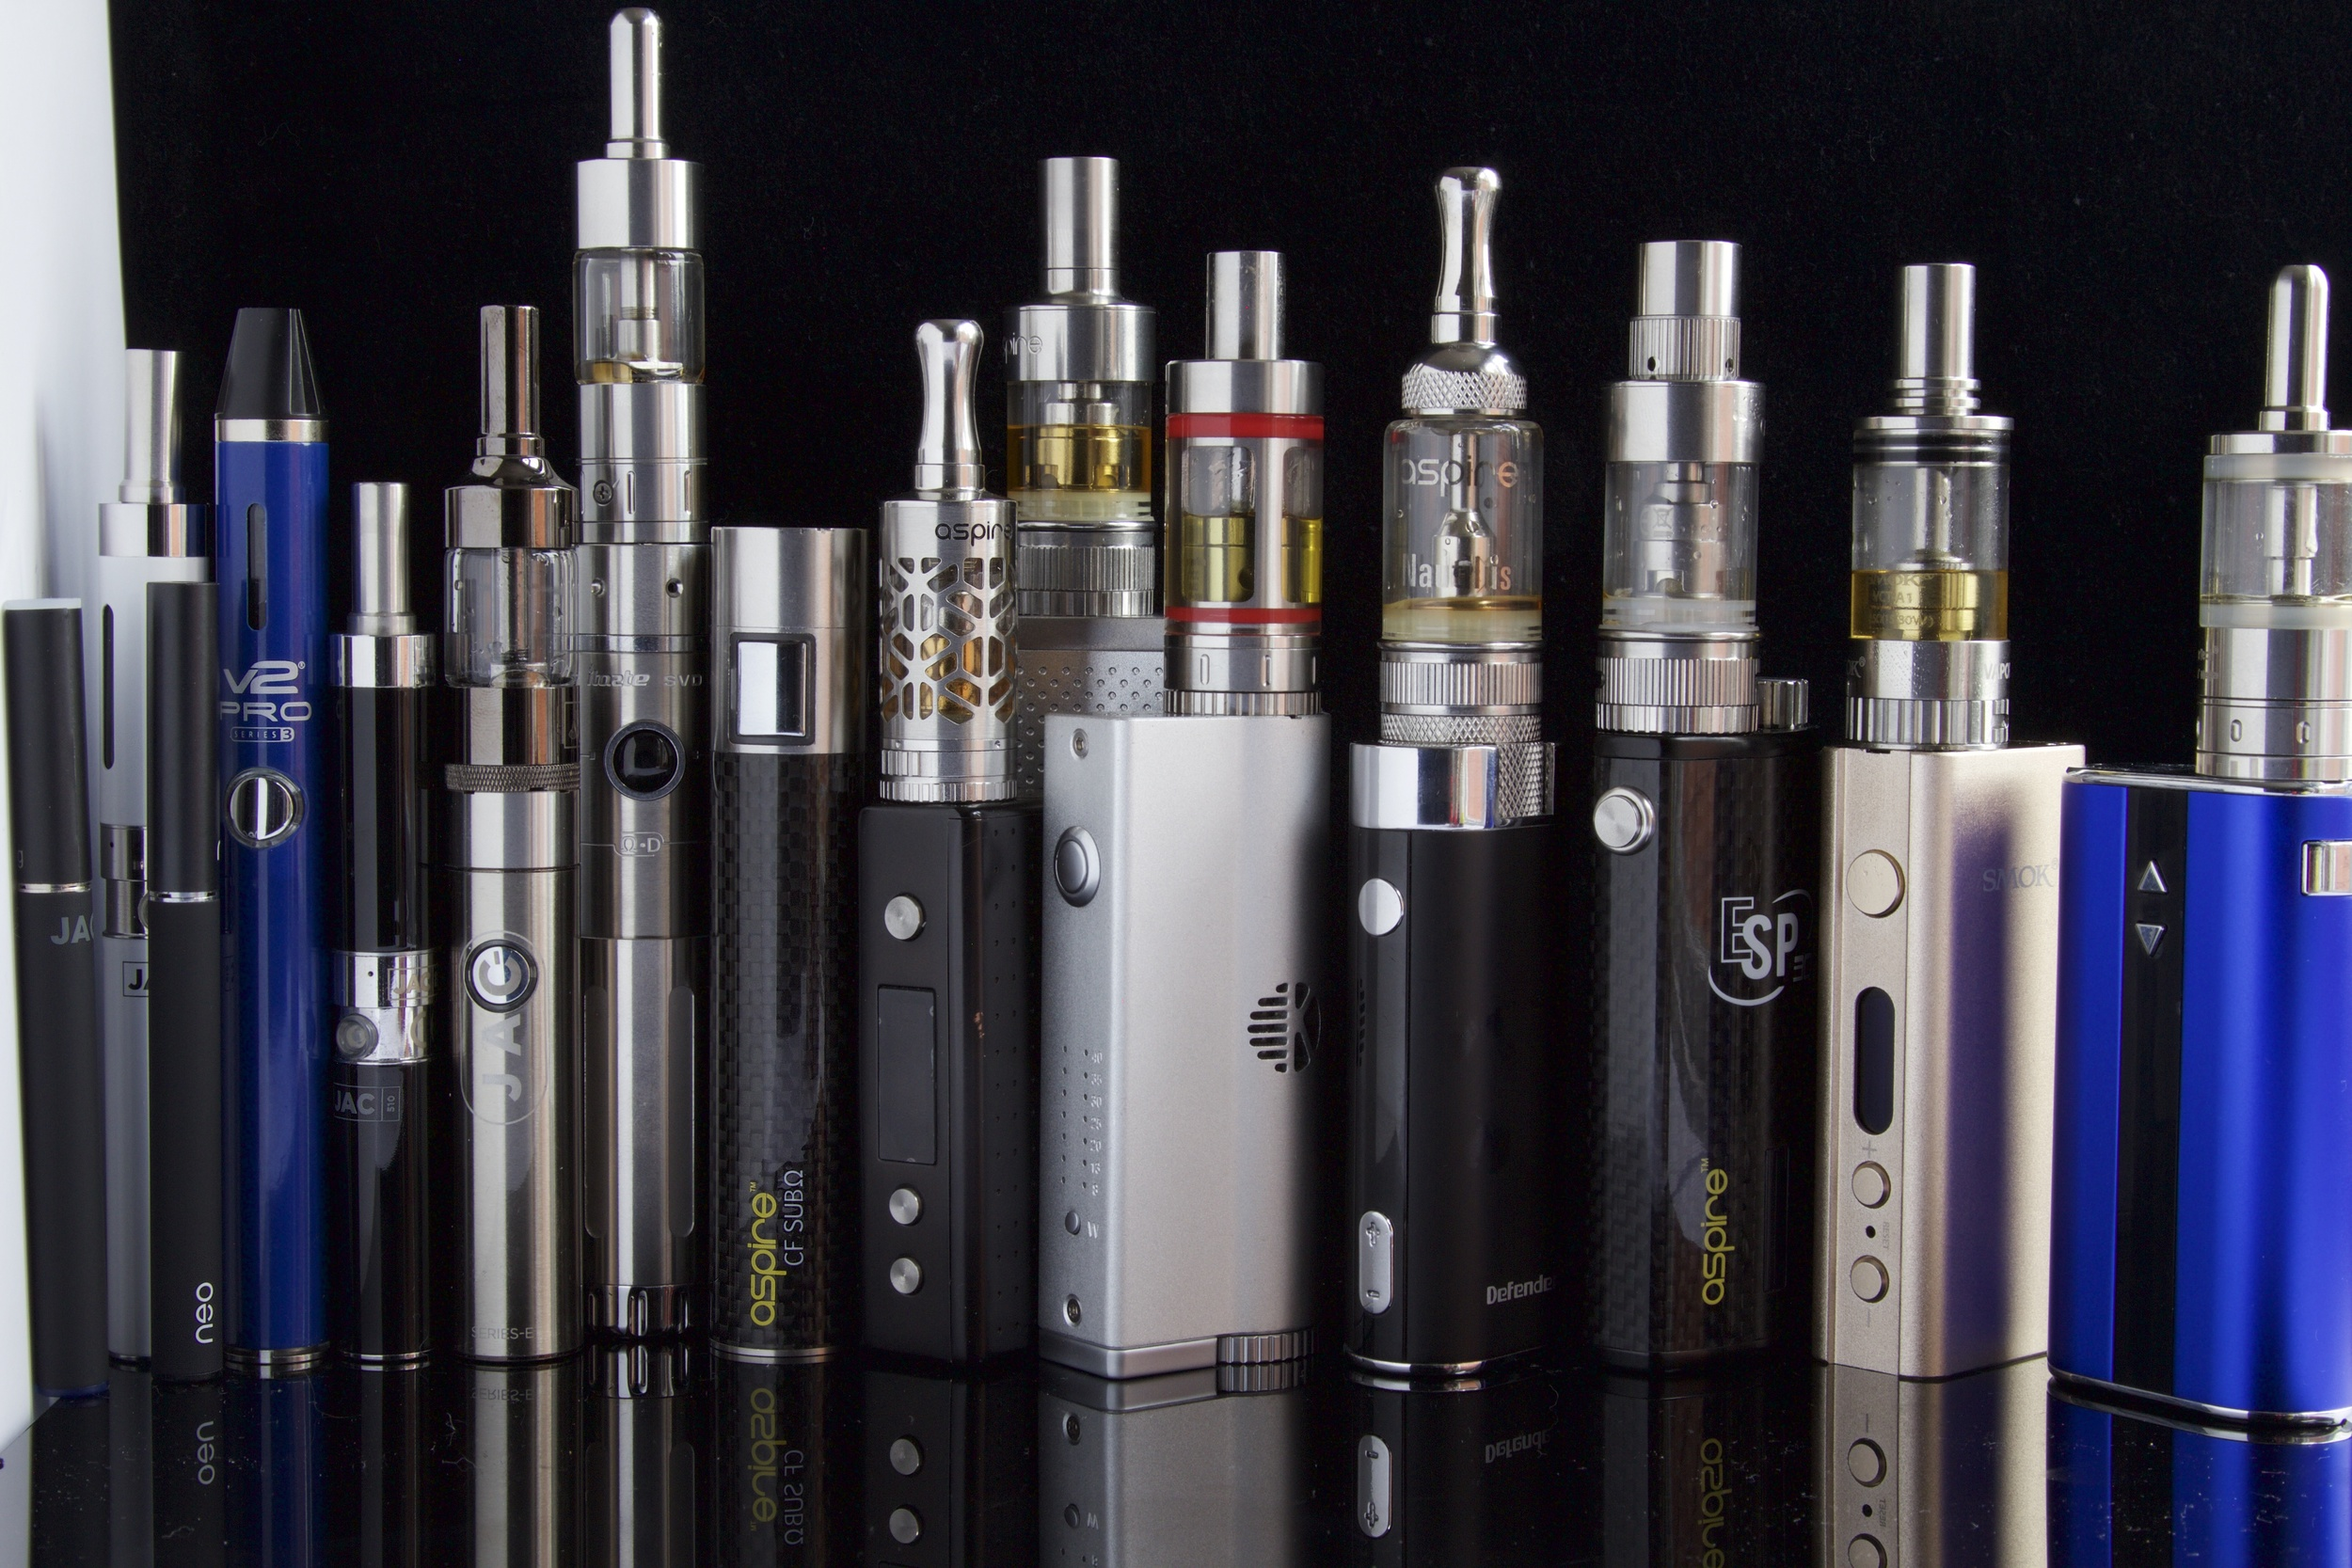 island_vape_shop_clearwater_beach_ecigs_vape_products_E_Cigarettes_Ego_Vaporizers_Box_Mods.jpg